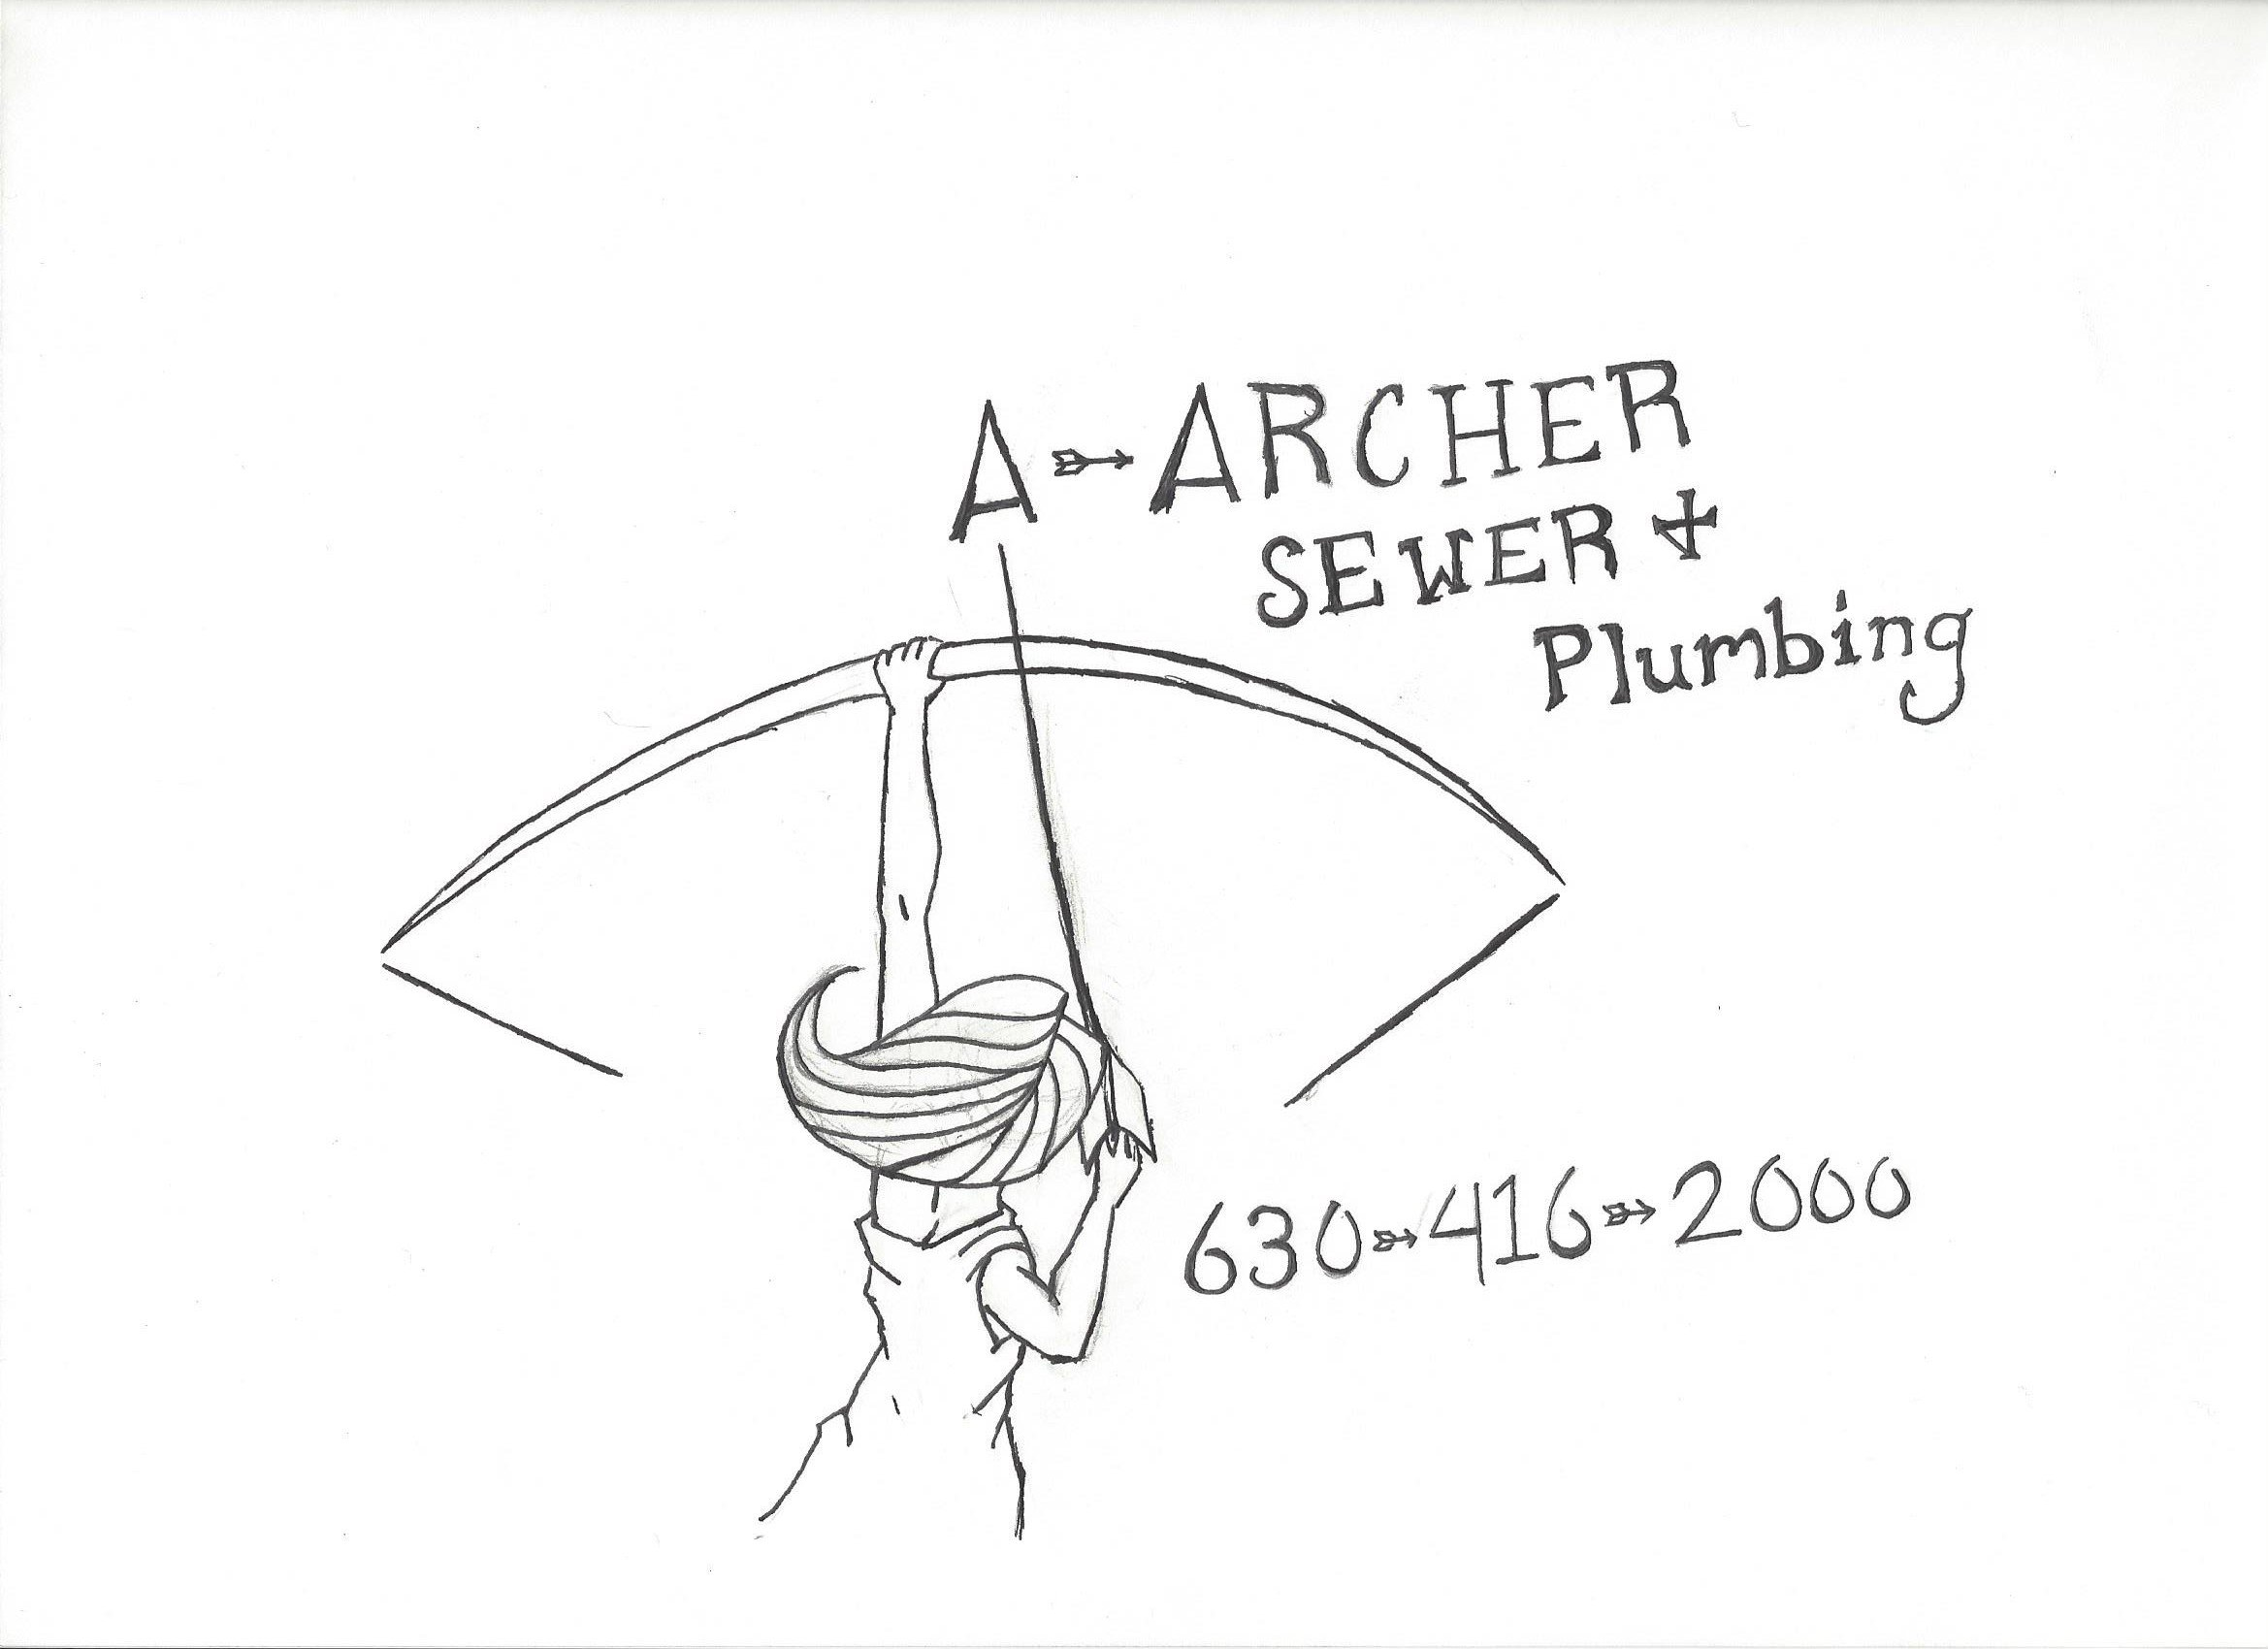 sewer drain services hydro repair monroe and jetting plumbing in mi